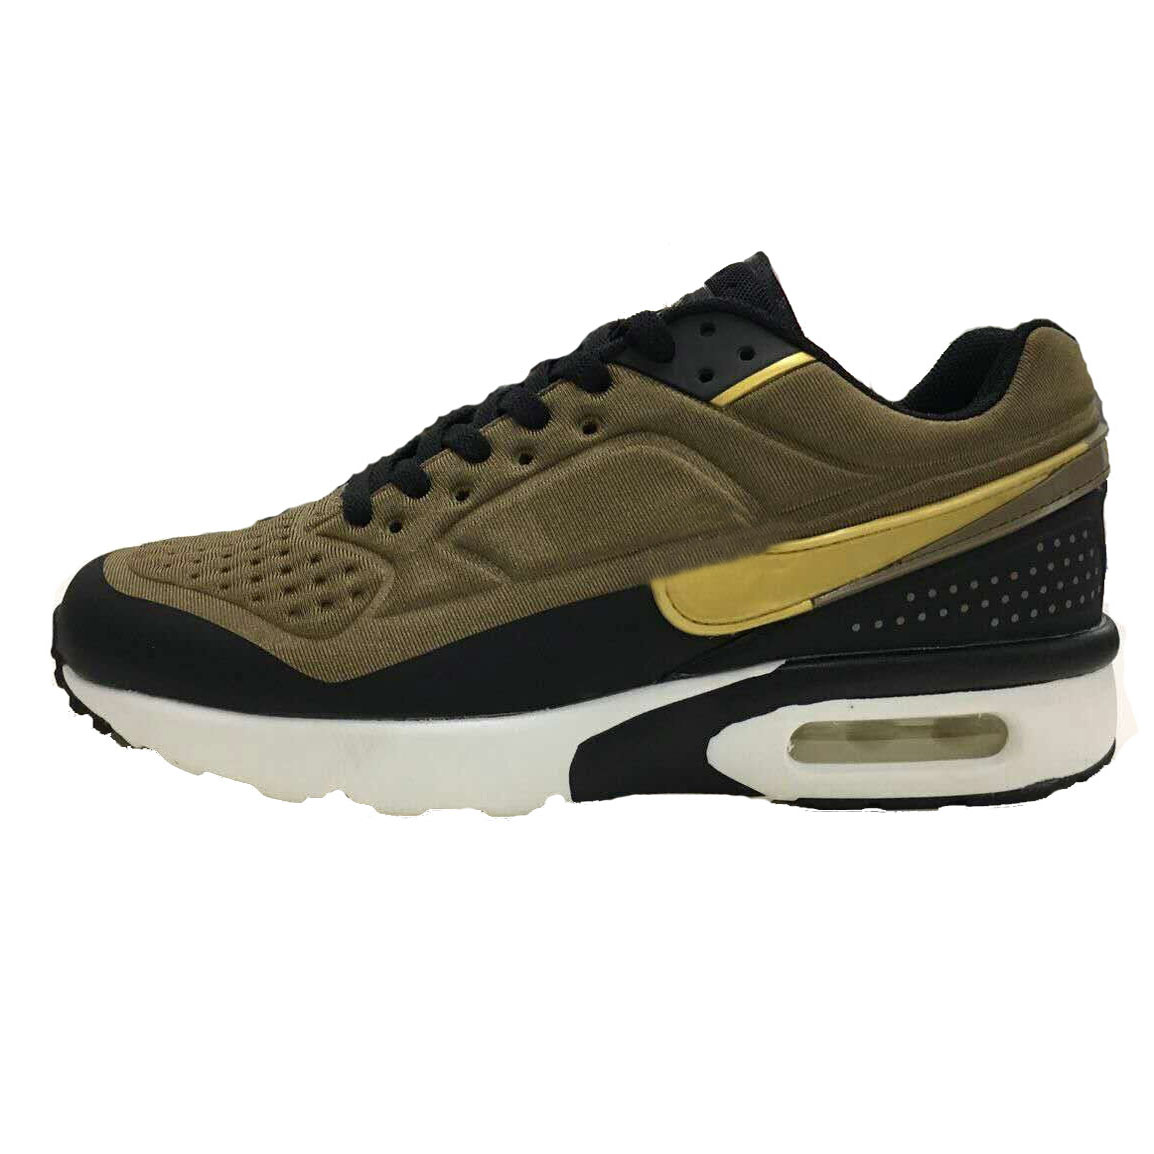 Fashion Sneaker Shoes, Running Shoes, Sport Shoes, Athletic Shoes for Men